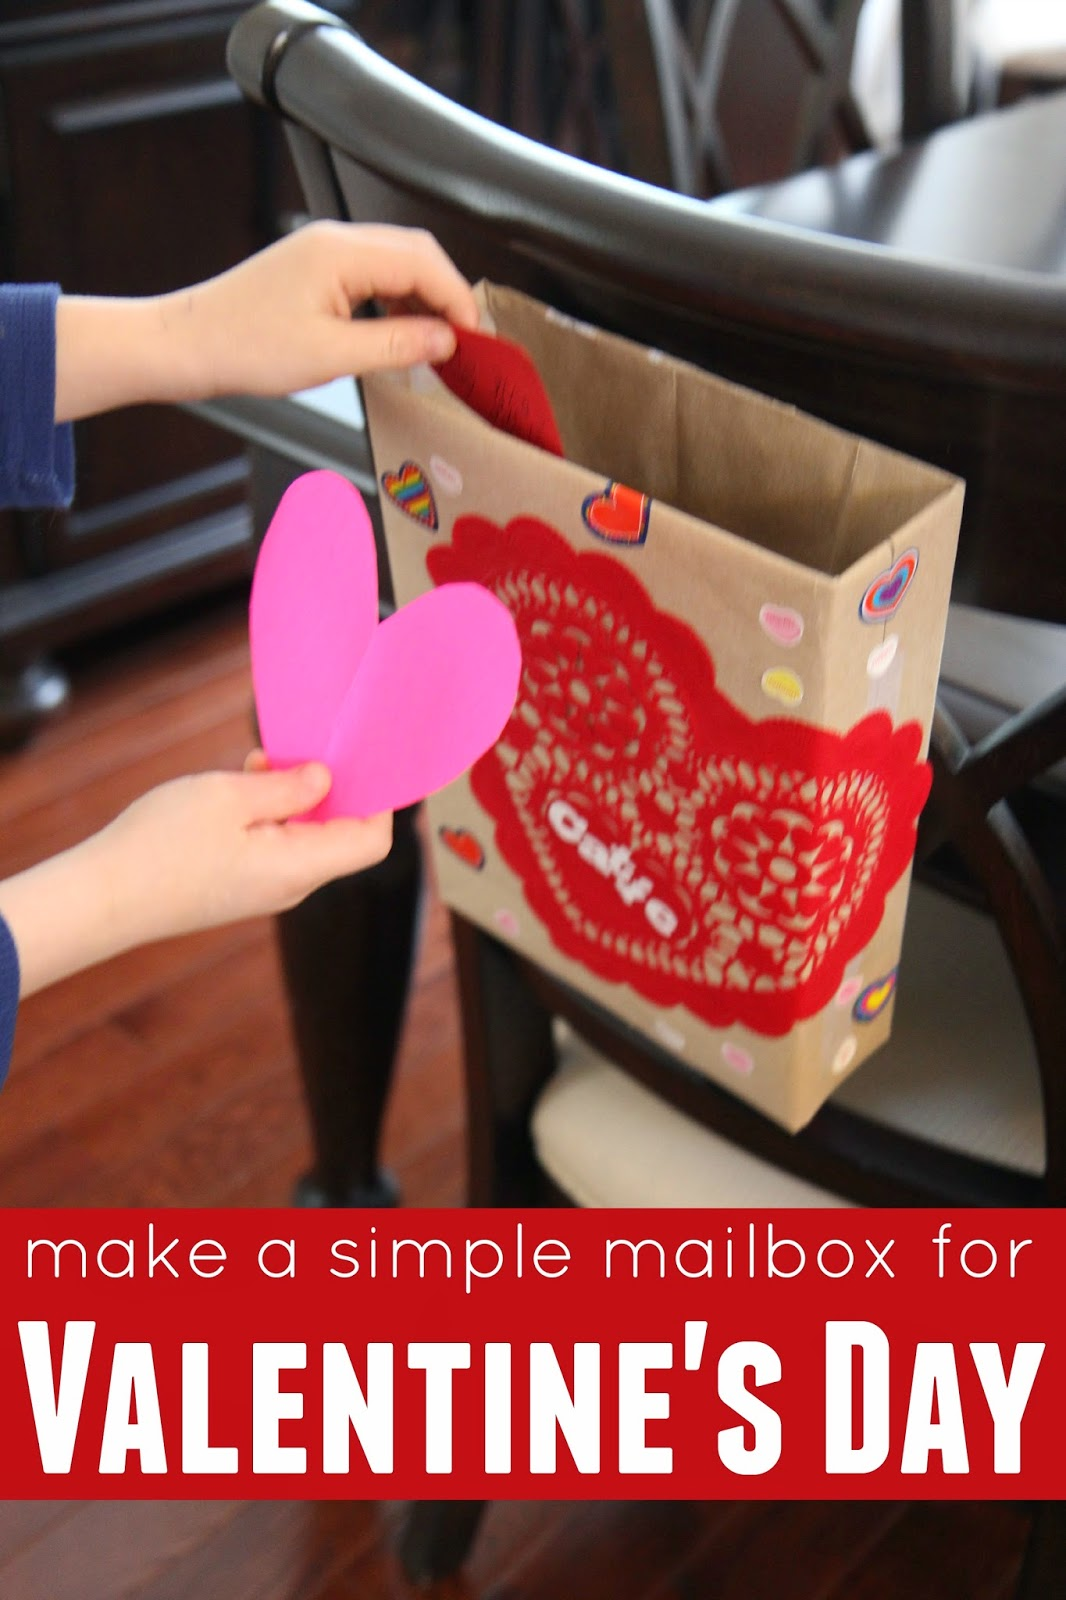 Cereal Box Mailboxes for Valentines Day Red Ted Arts Blog – How to Make an Awesome Valentines Day Card